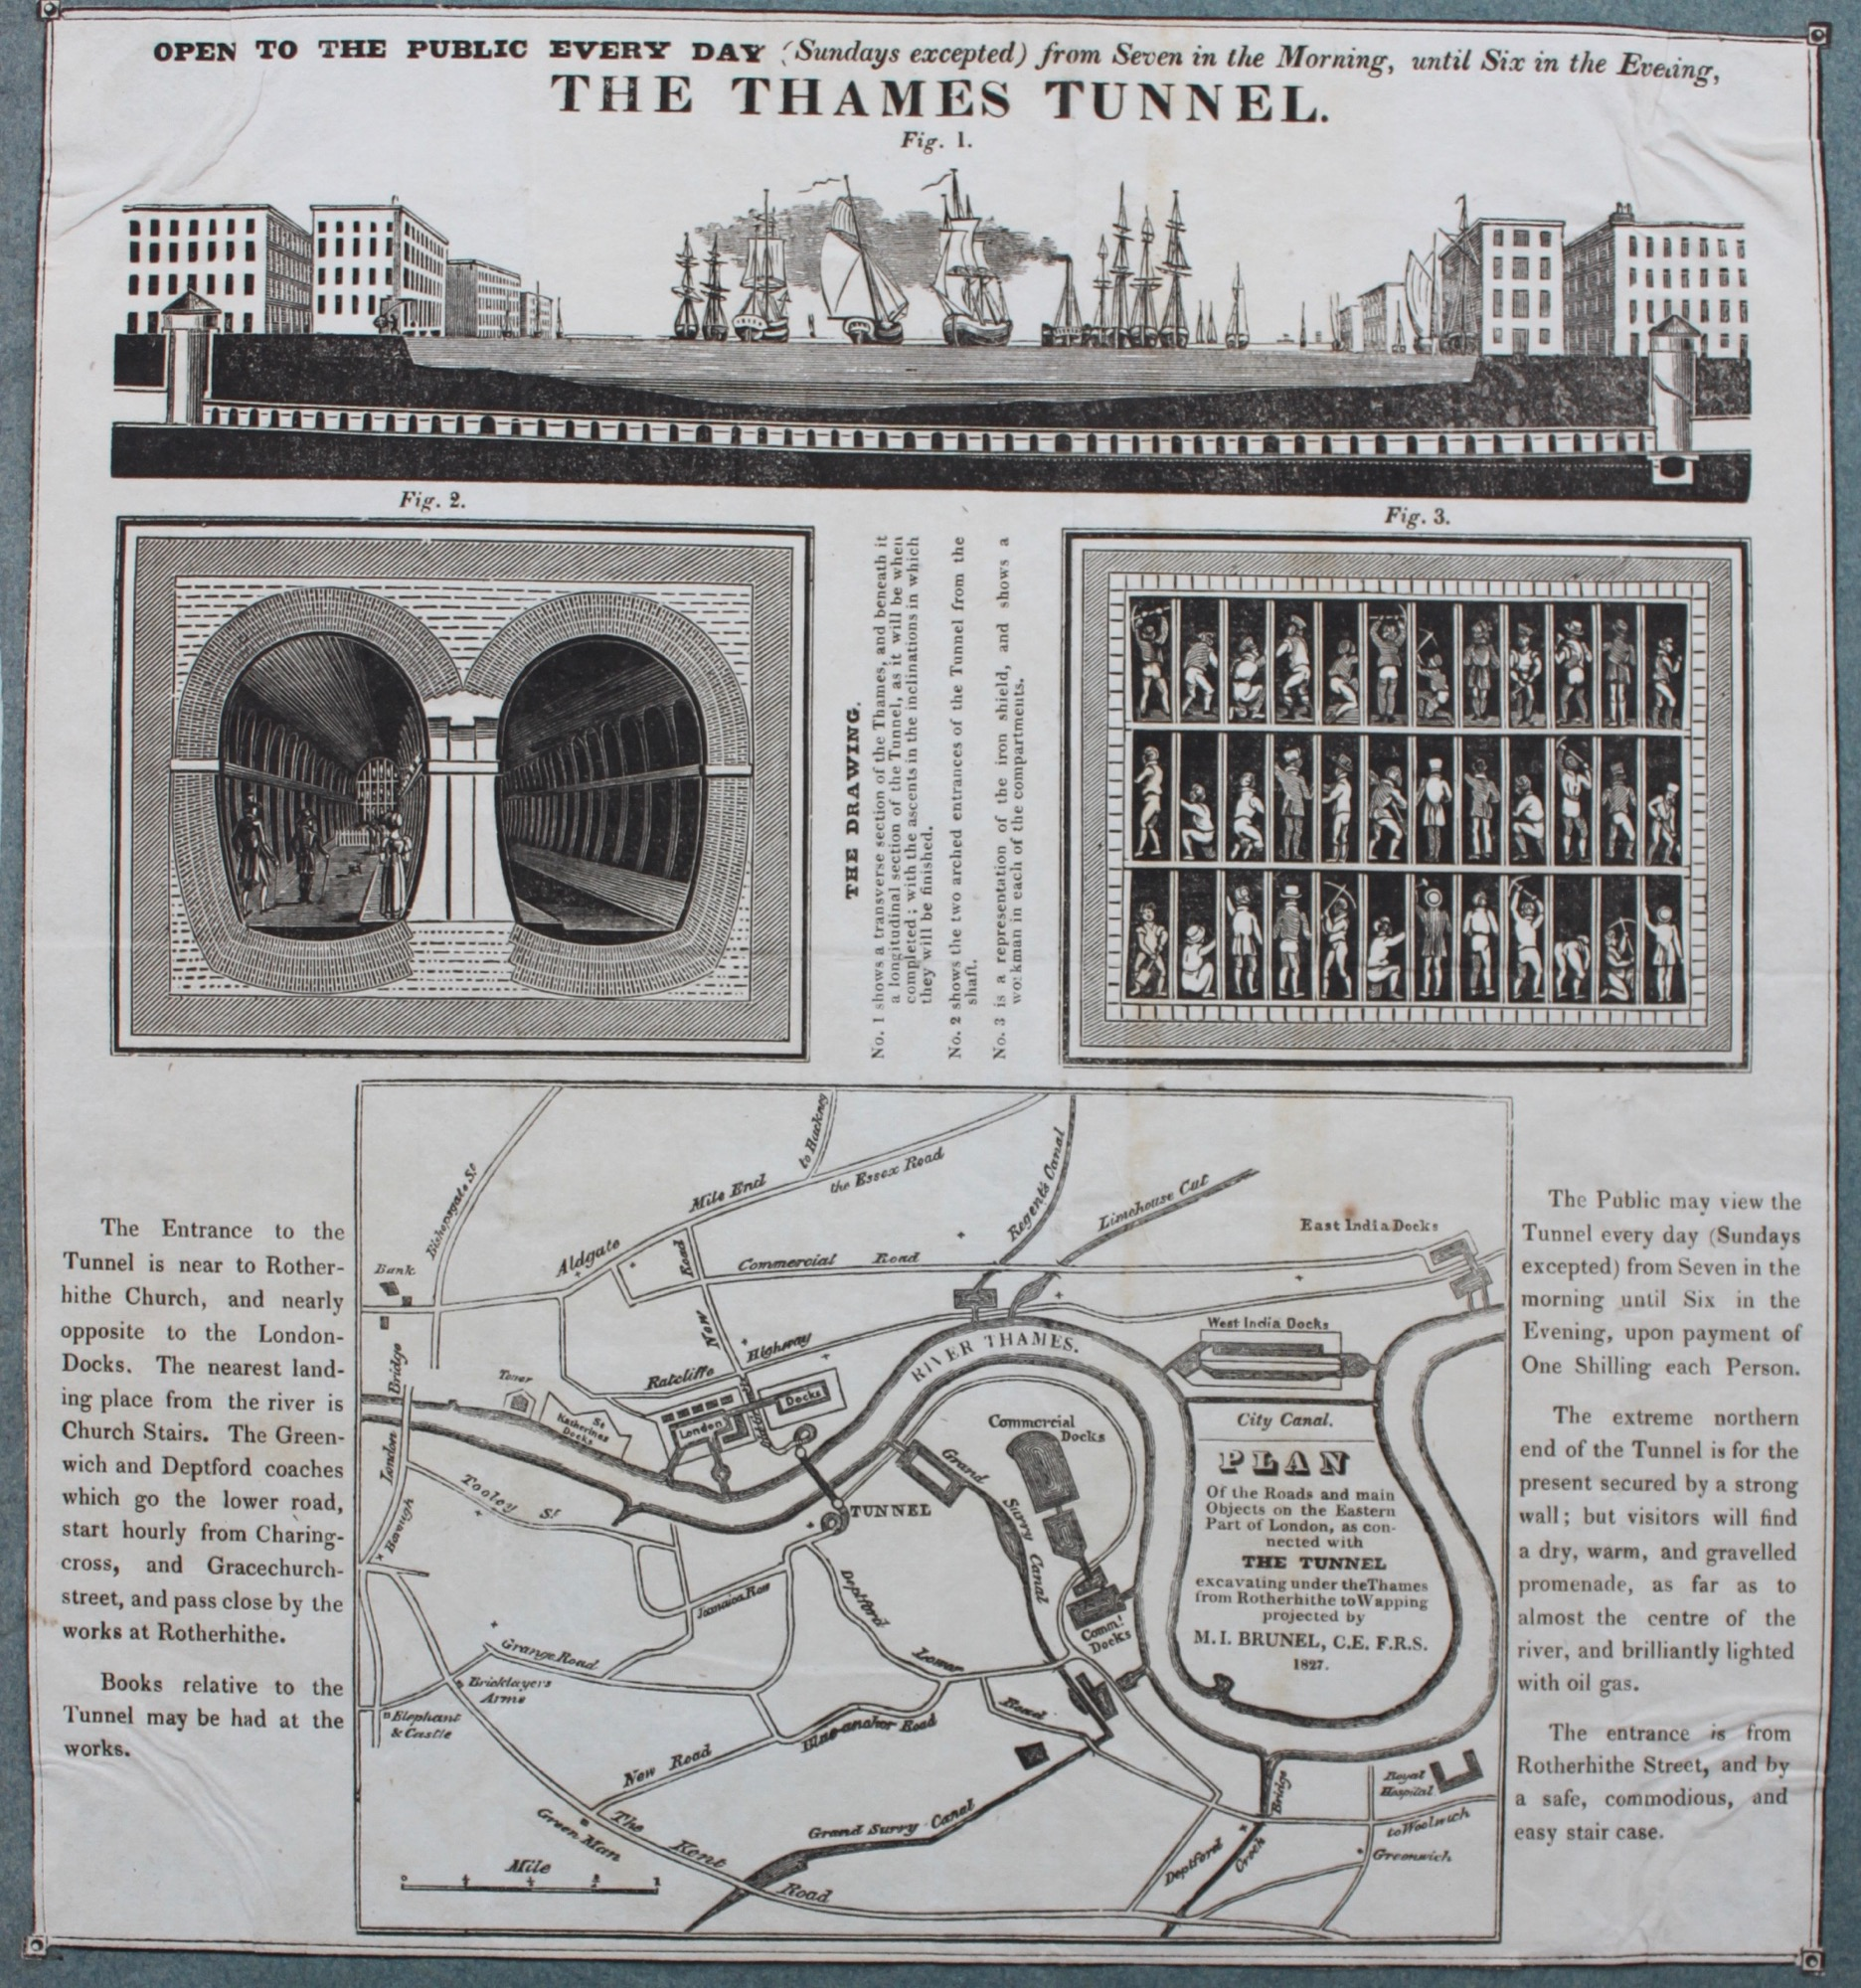 Image for Open to the Public Every Day (Sundays excepted) from seven in the morning until six in the evening. The Thames Tunnel.